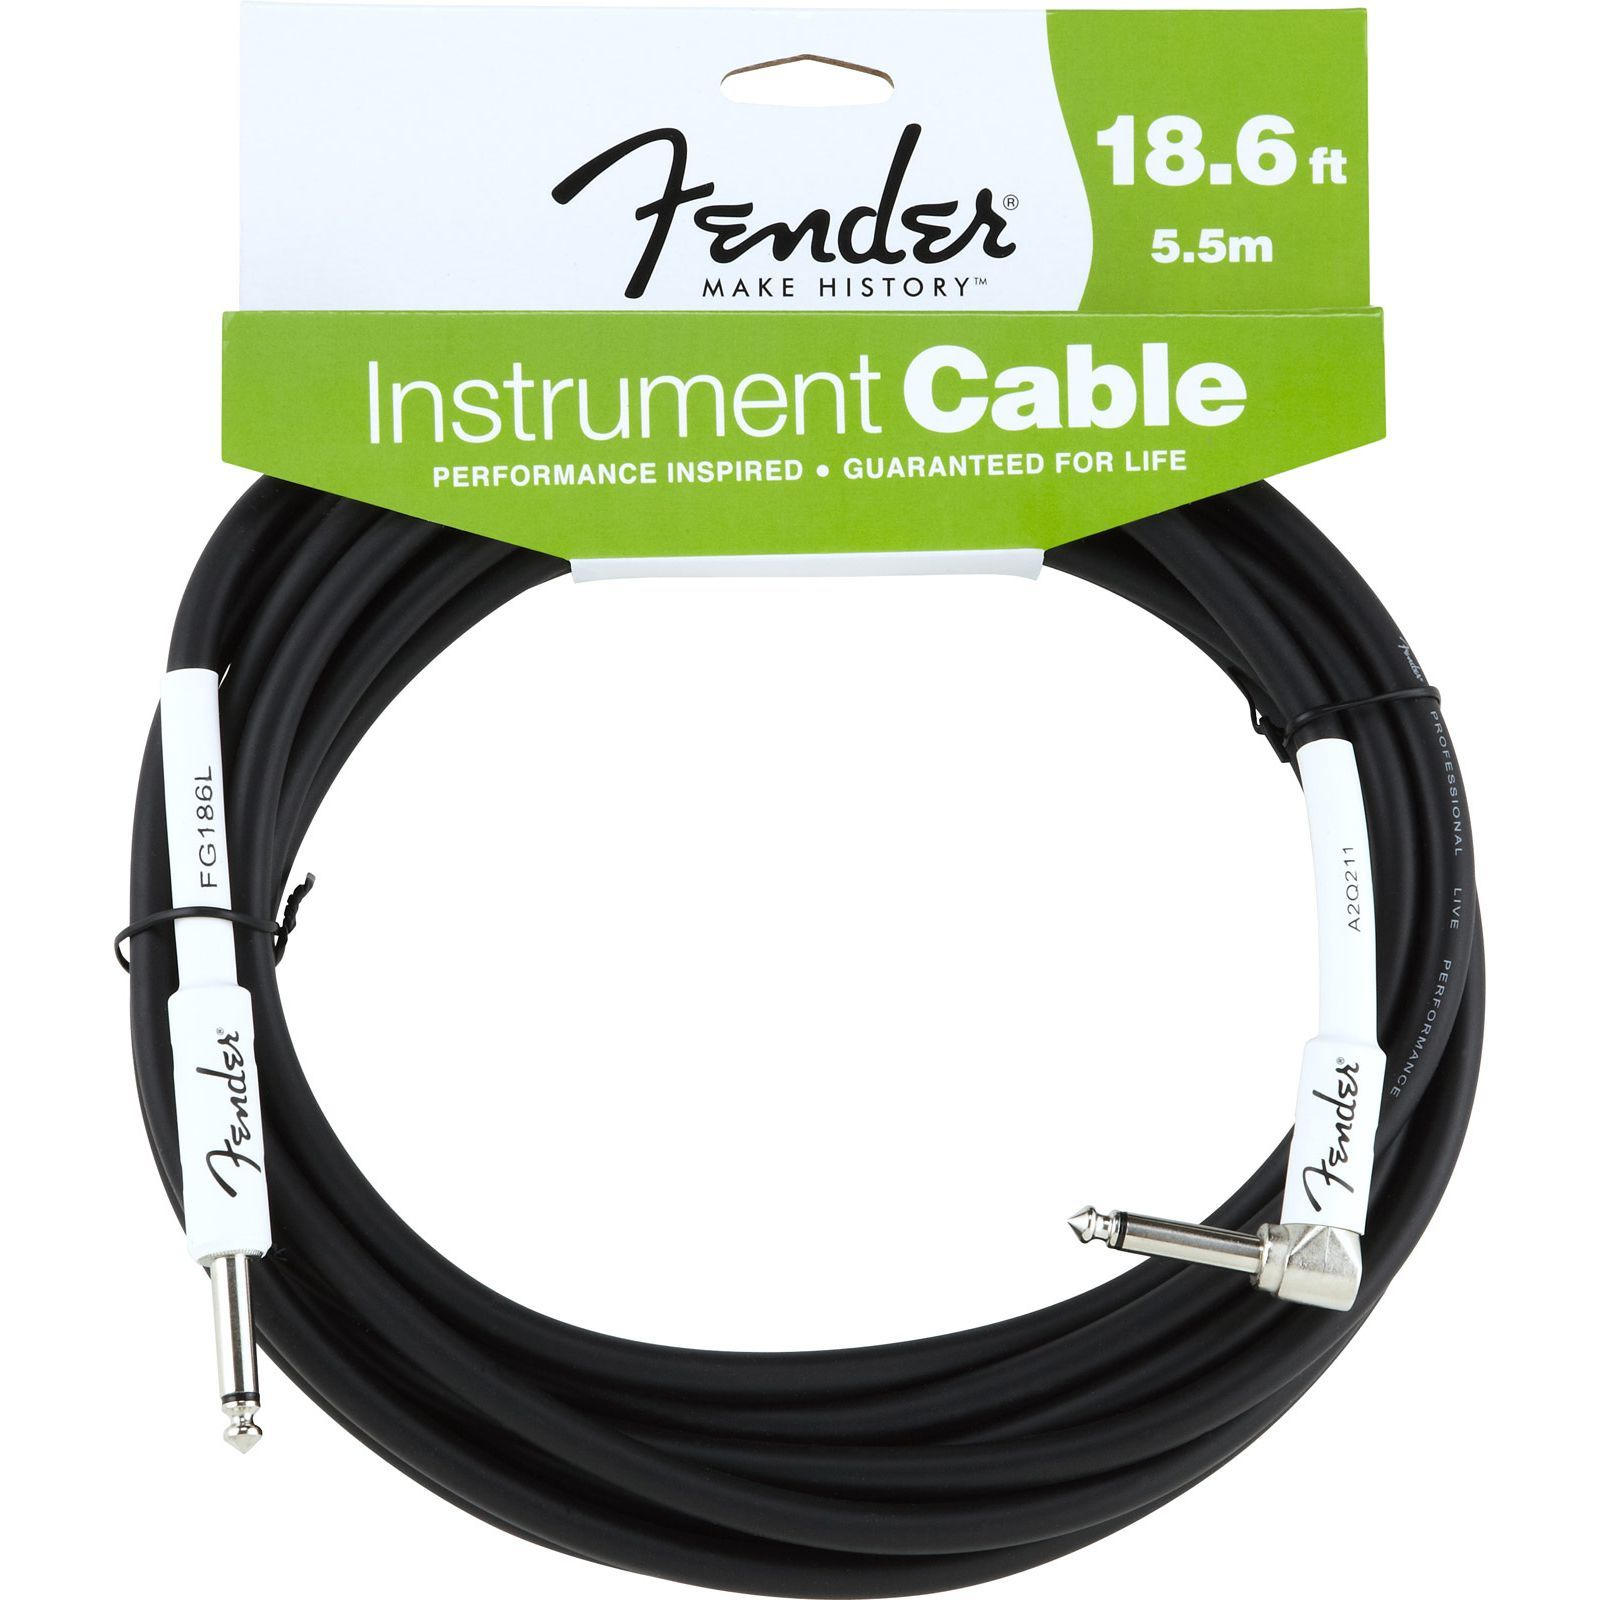 Fender Performance Cable 5.5m BK Black, Kli/WKli Produktbillede